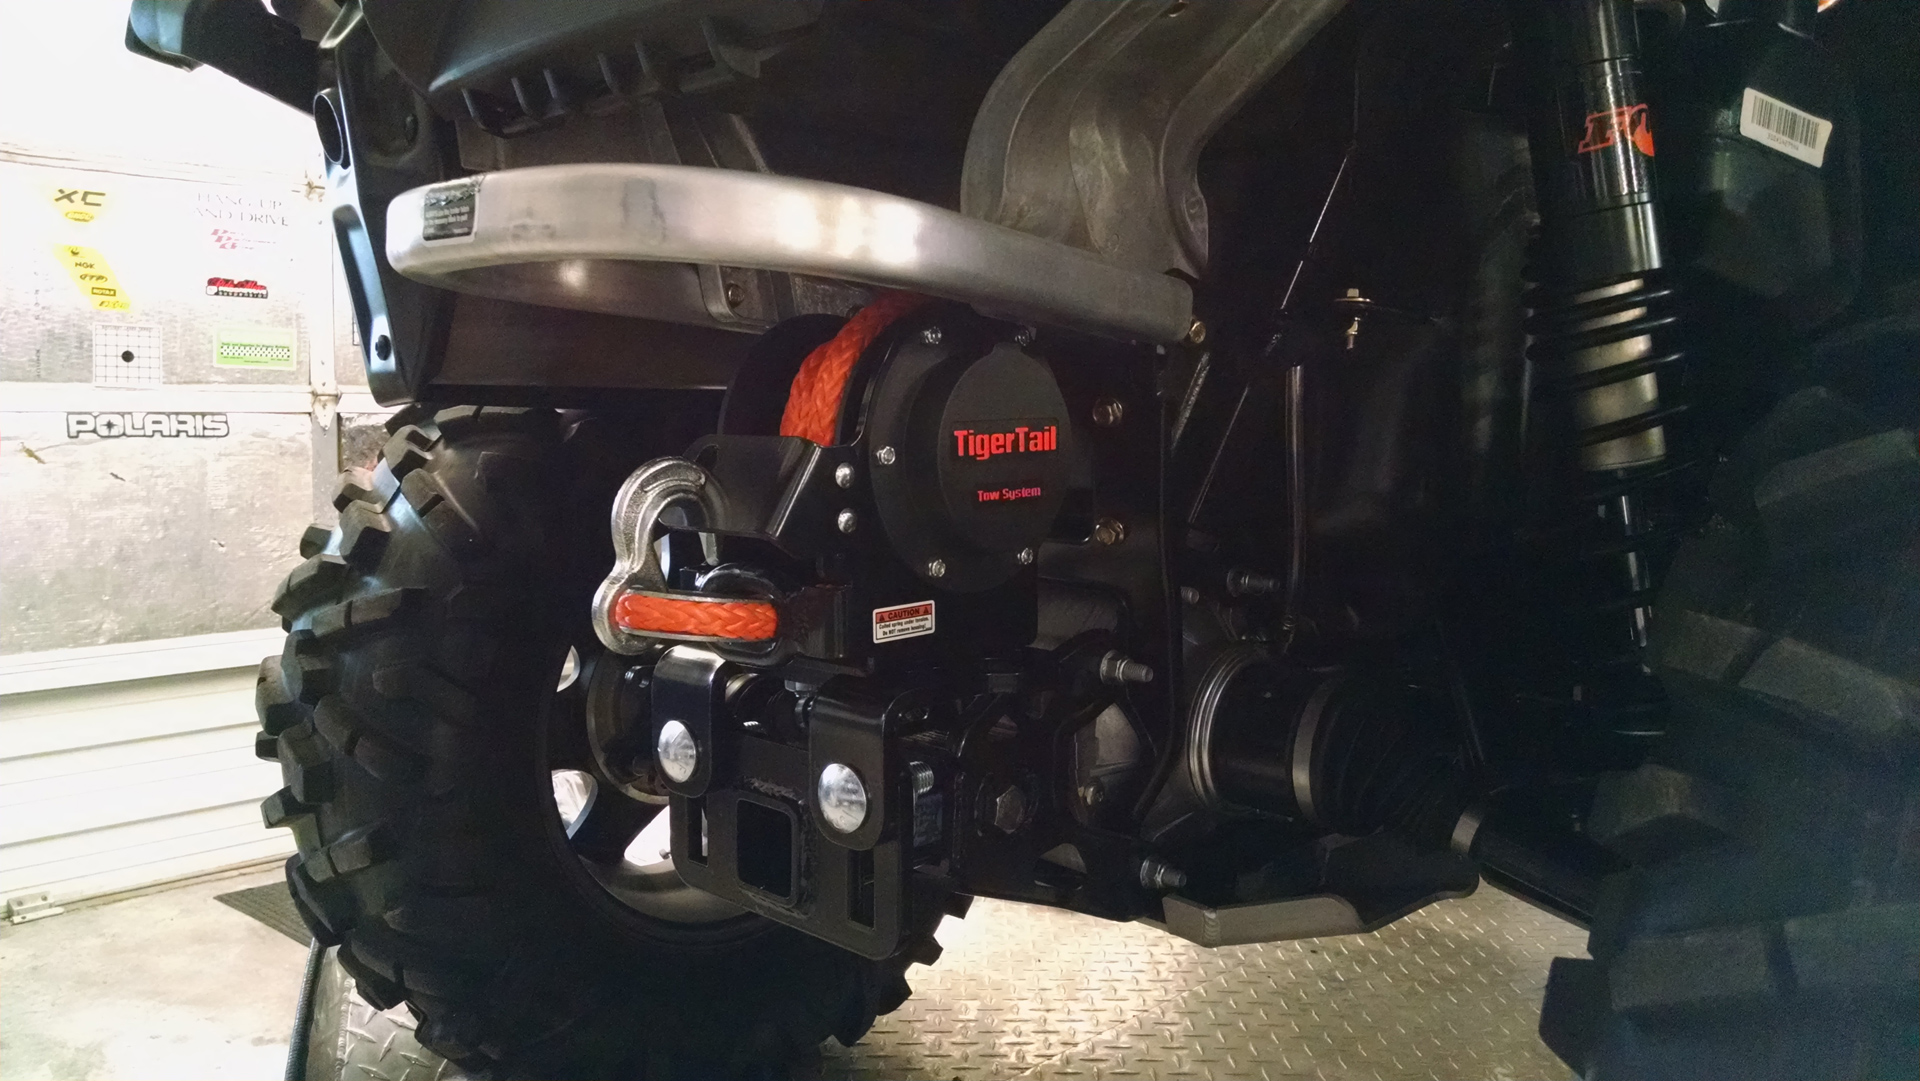 Tiger Tail Tow System Tow Ropes Made Easy